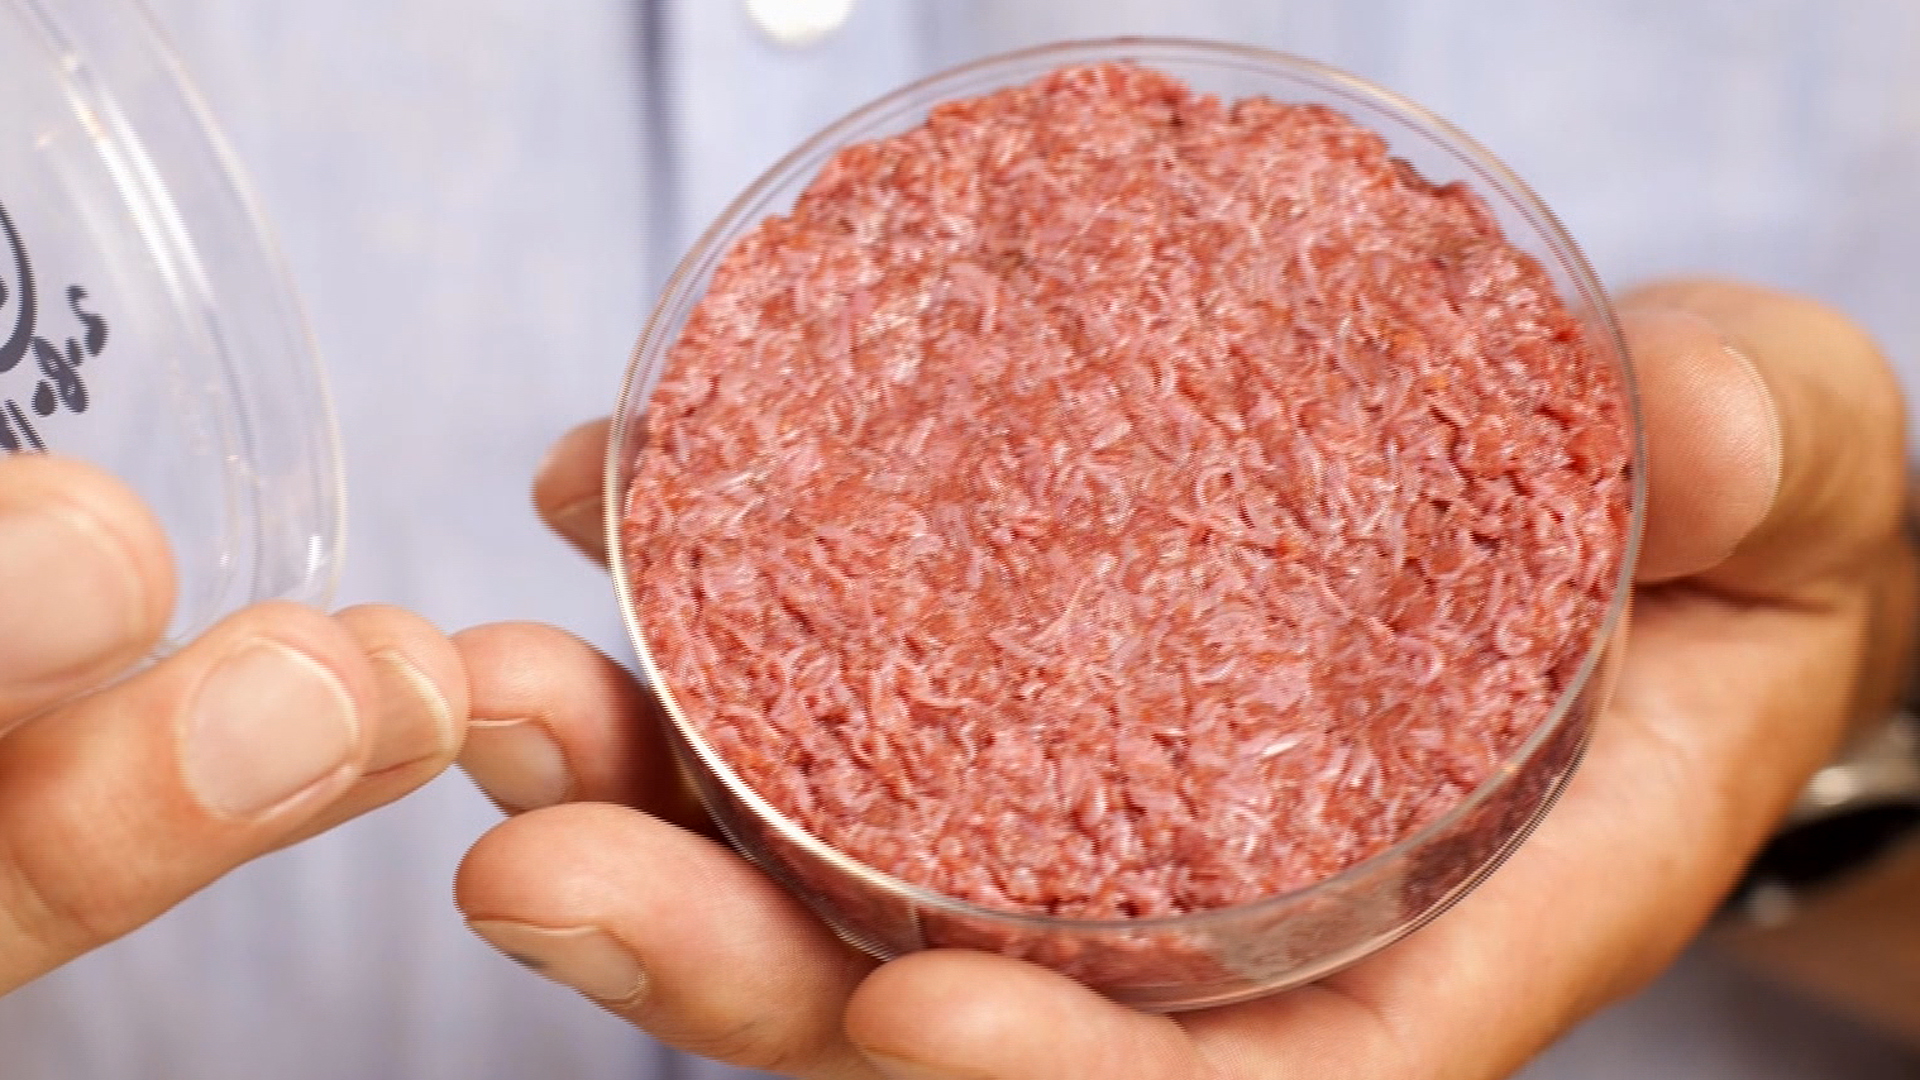 Lab Grown Meat Companies Lab-grown Meat is Here– But